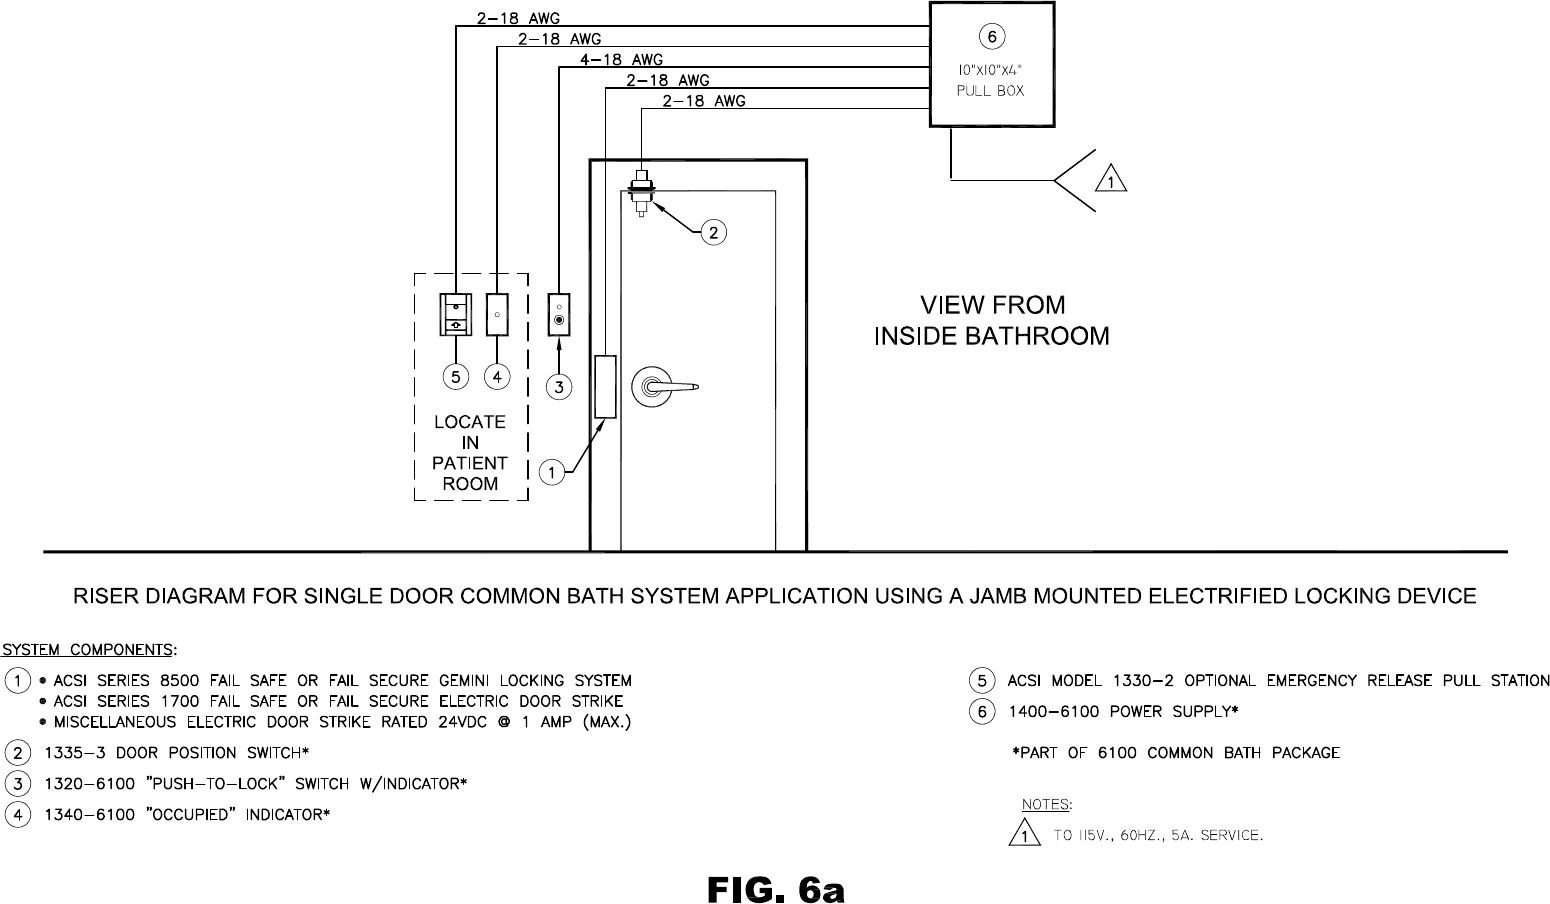 The Hes Series Securityinfowatchcom Knock Sensor Wiring Harness - Adams rite 7400 wiring diagram